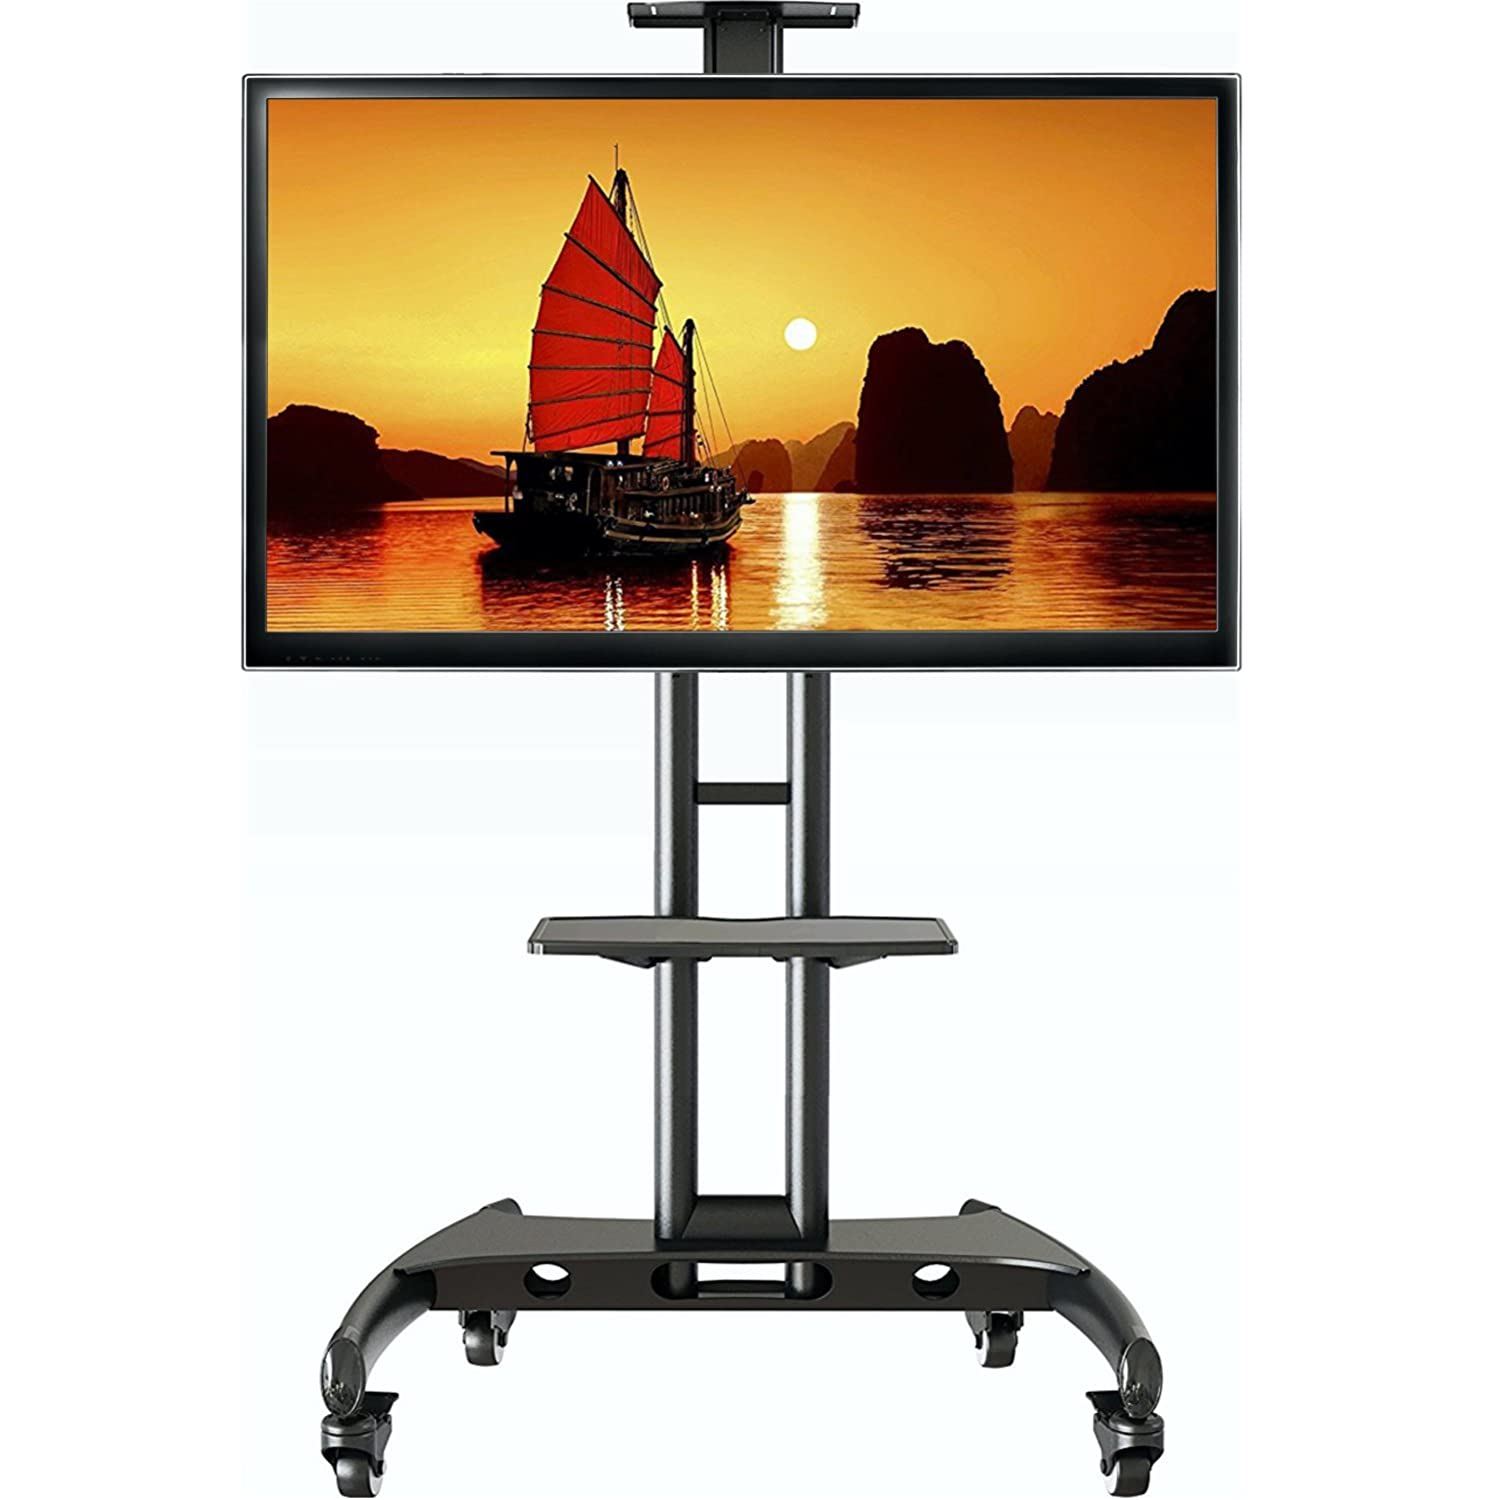 North Bayou Universal Mobile TV Cart TV Stand with Mount for LED LCD Plasma  Flat Panel Screens and Displays 32 To 65 Inch Up To. AV Carts   AV Stands   Amazon com   Office Furniture   Lighting